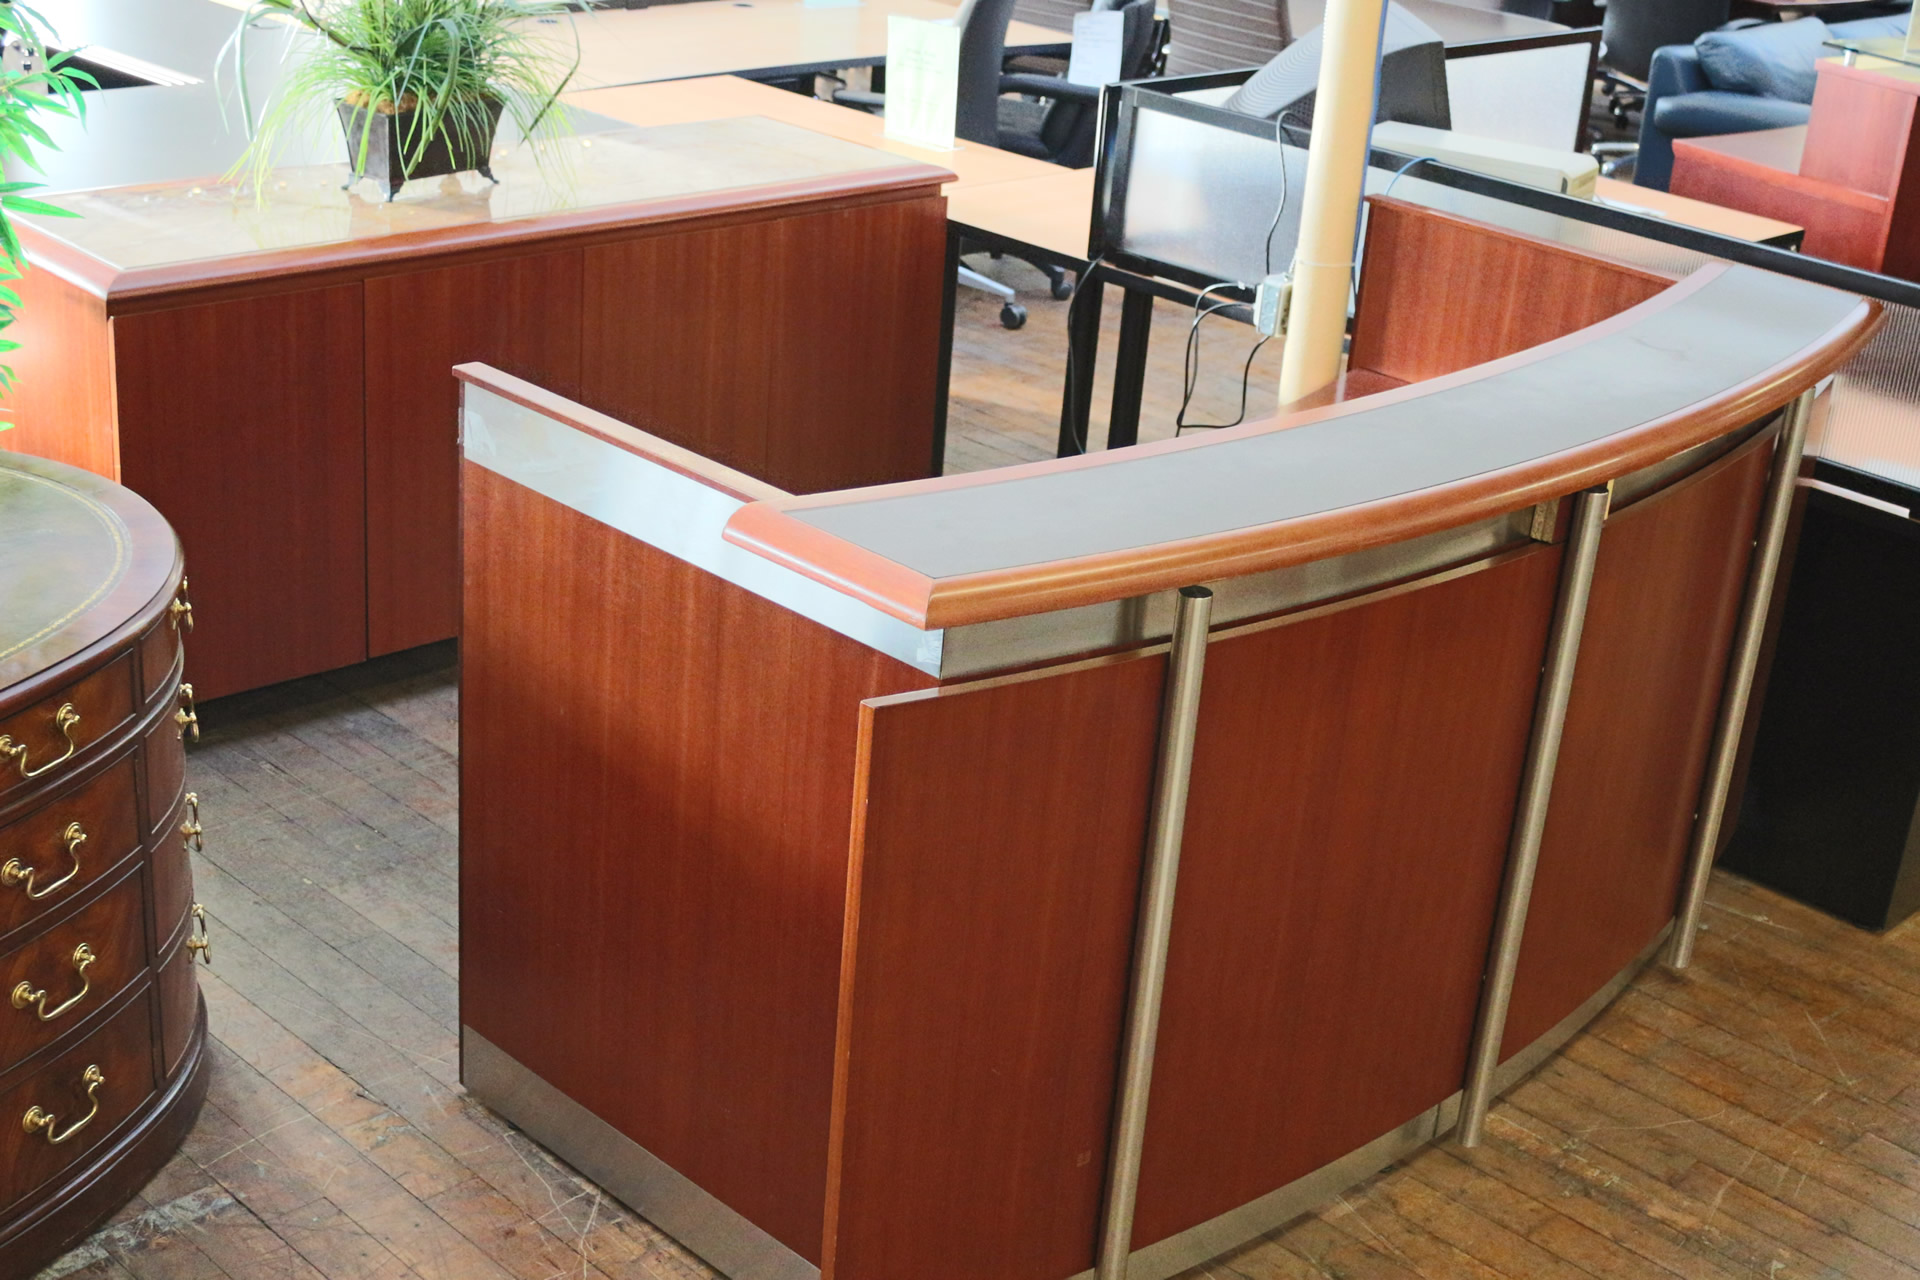 peartreeofficefurniture_peartreeofficefurniture_img_0403.jpg